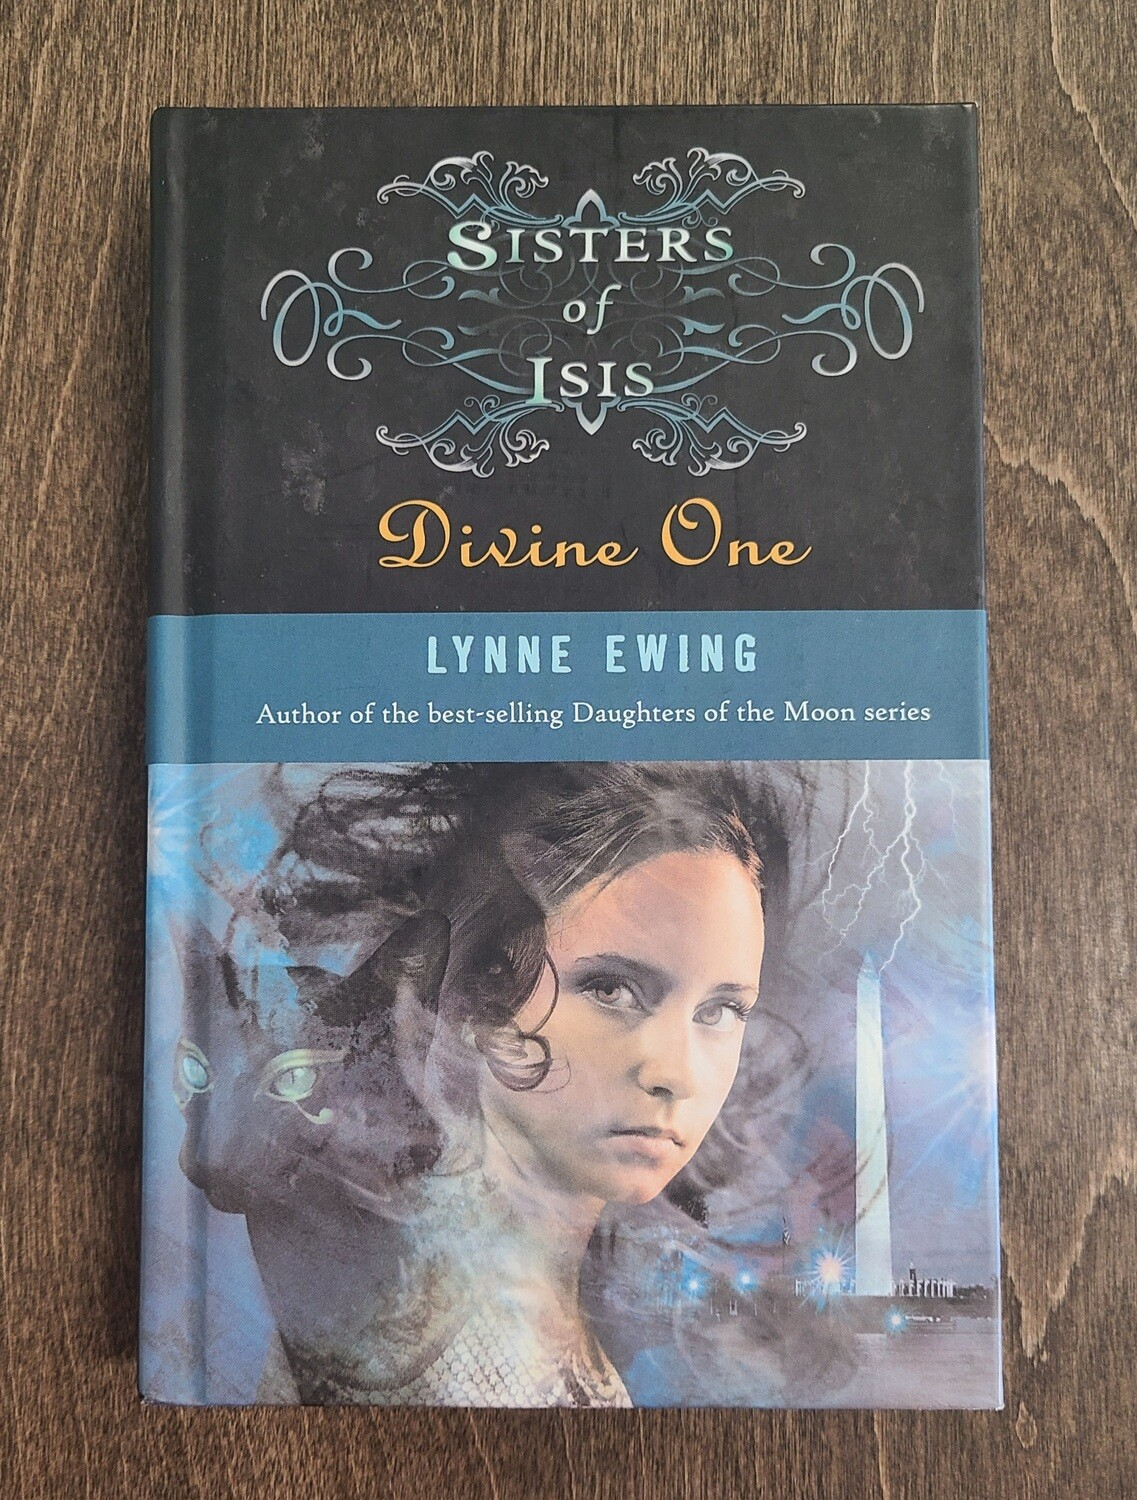 Sisters of Isis: Divine One by Lynne Ewing